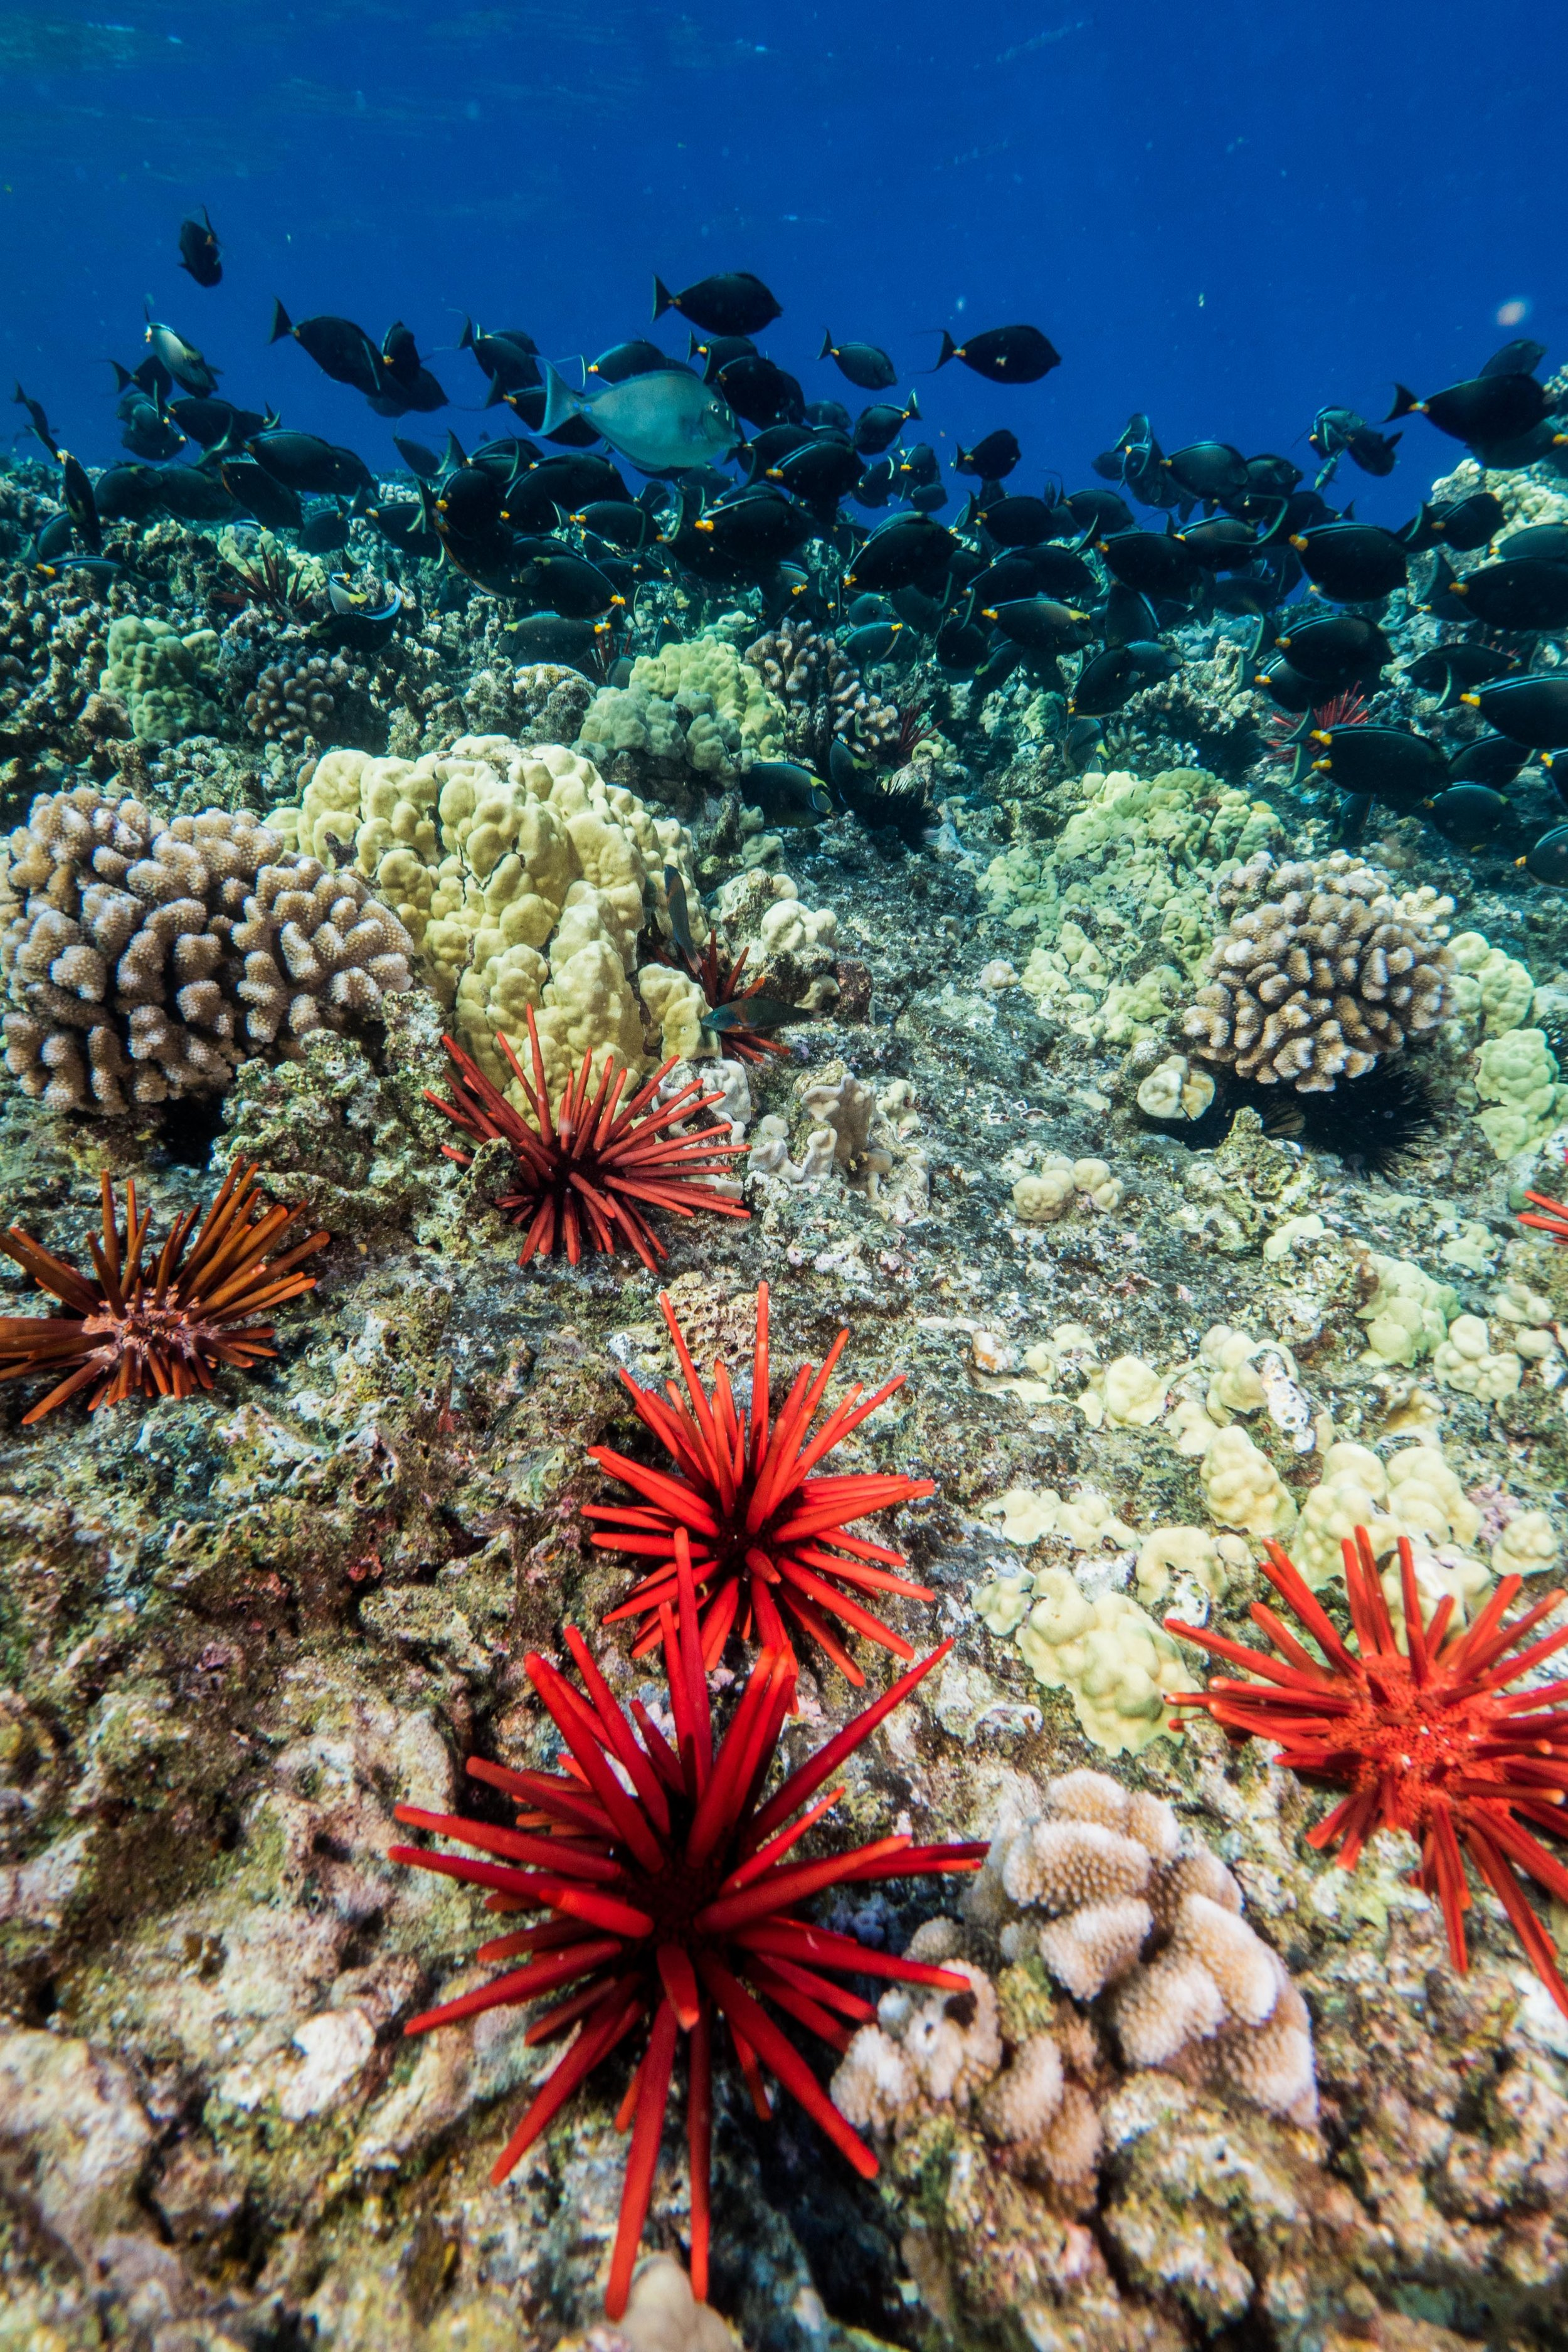 Bright red Slate Pencil Urchins sit on the top of the reef at Molokini Crater off the coast of Maui while Orangespine Unicorn fish shoal in the shallows.  Molokini was formed by volcanic ash approximately 230,000 years ago, and now supports a rich coral reef in the waters around it.